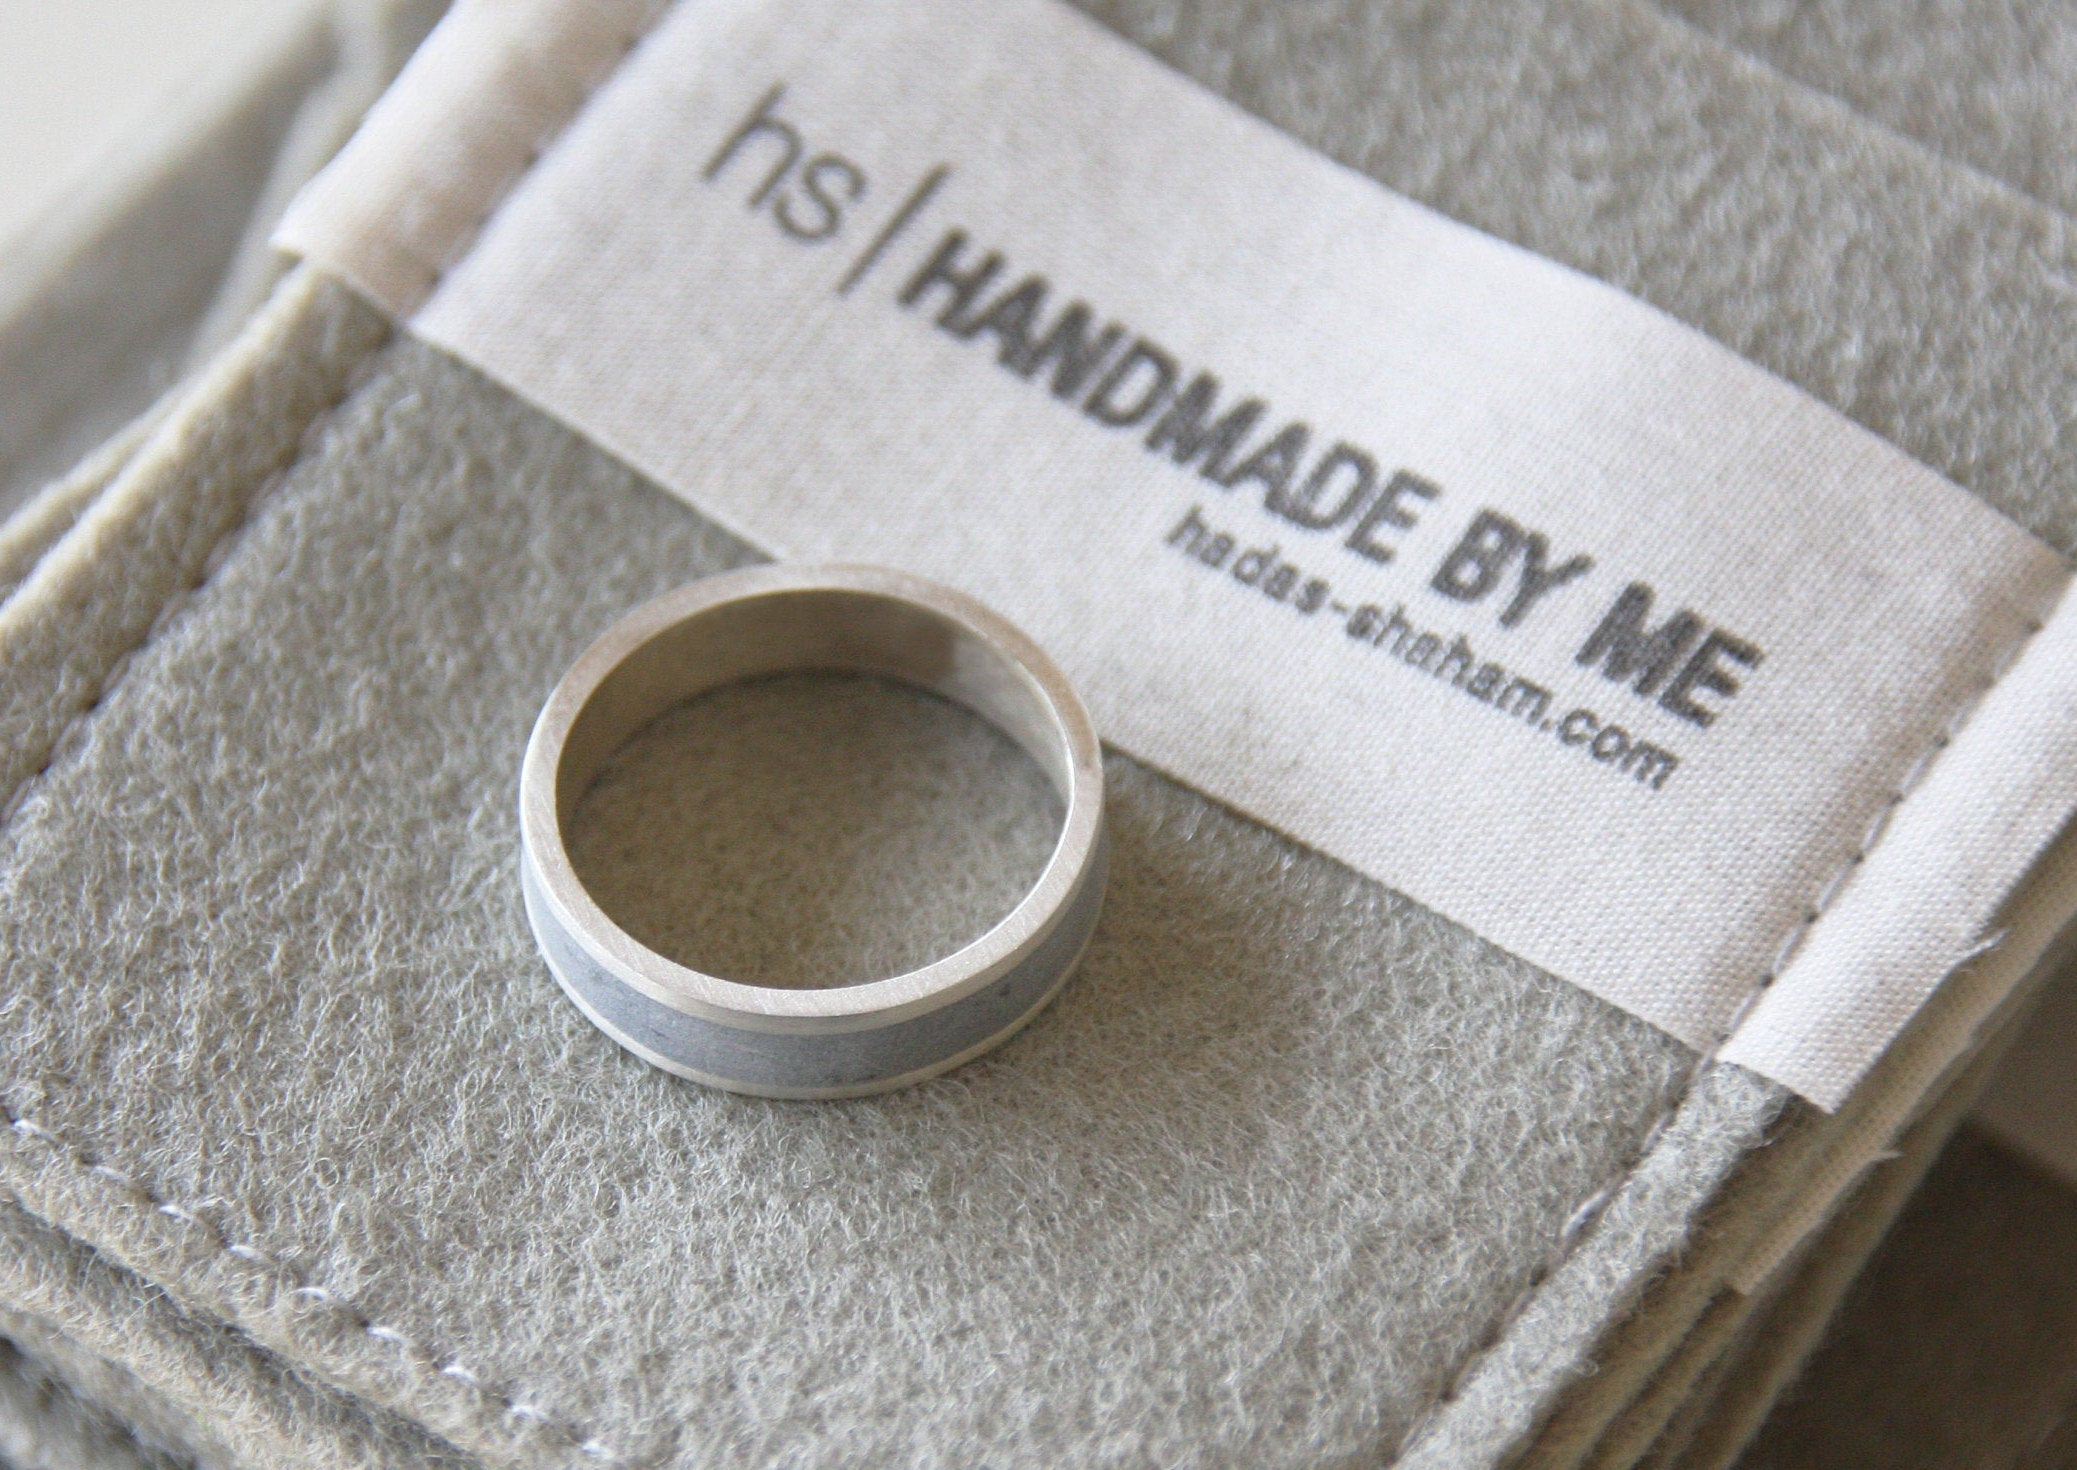 Silver and Concrete Unisex Wedding Band Ring - hs